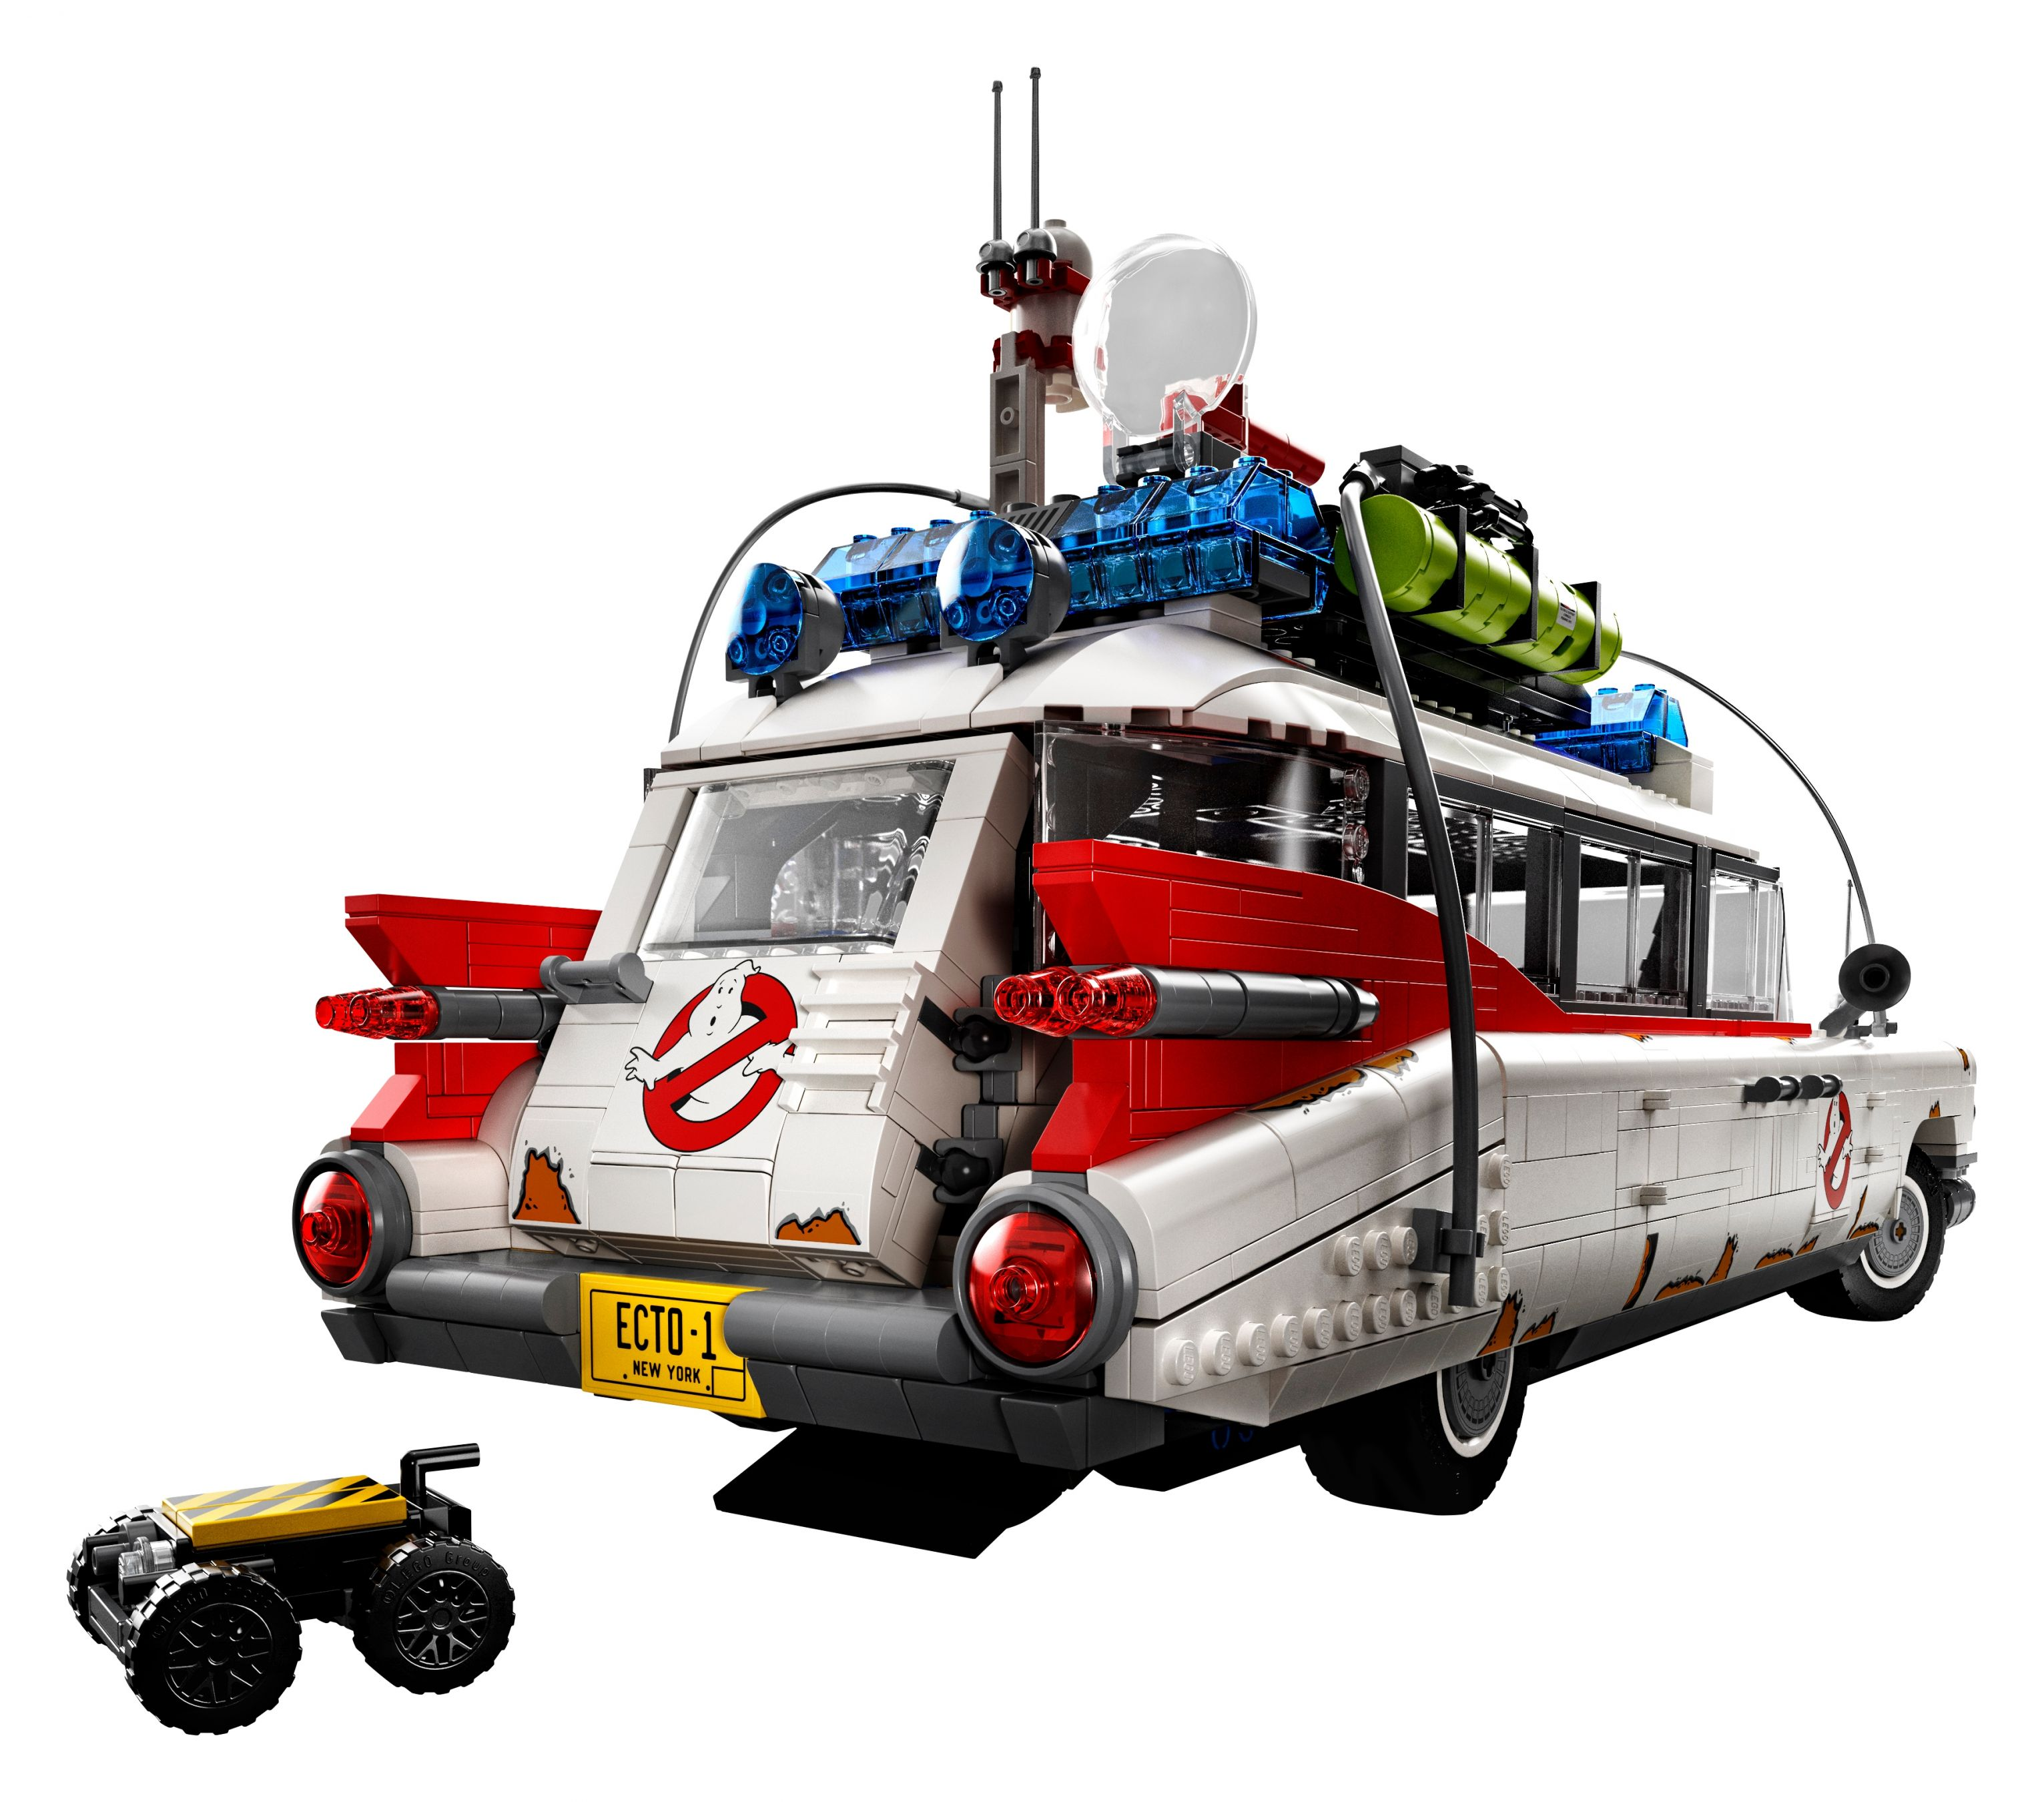 LEGO Advanced Models 10274 Ghostbusters™ ECTO-1 LEGO_10274_alt7.jpg